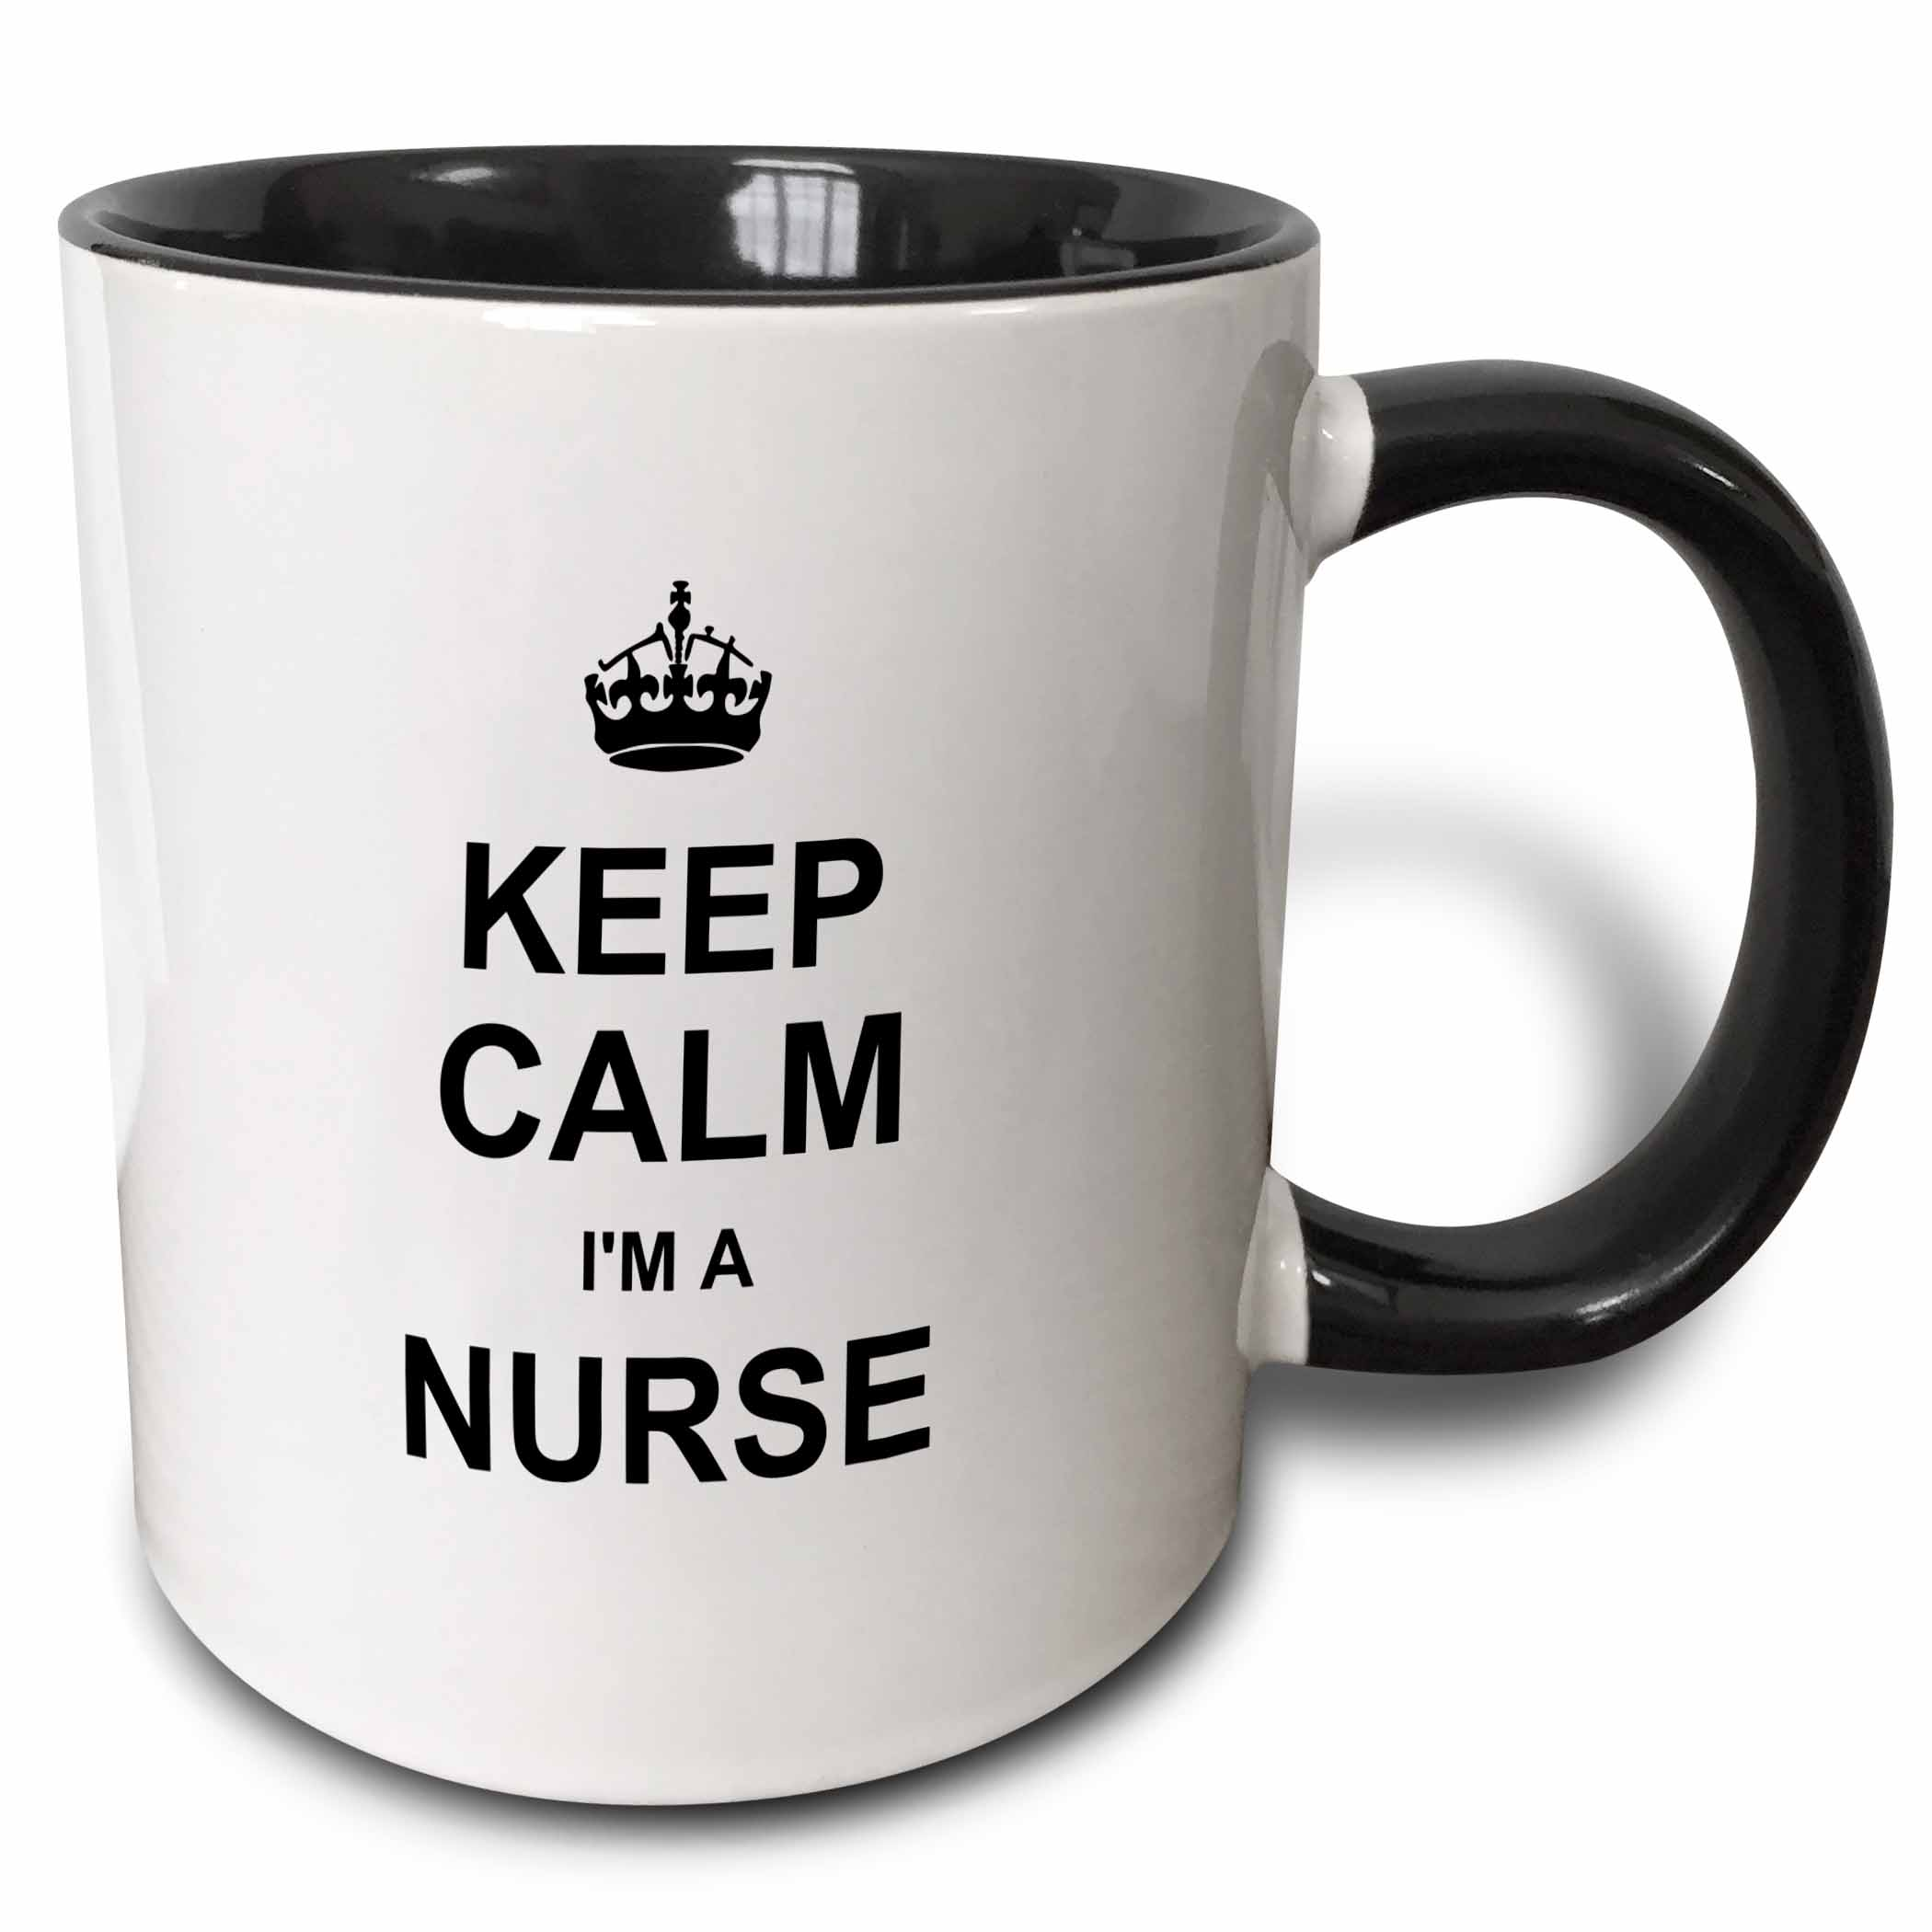 3dRose Keep Calm Im a Nurse - nursing pride - funny medical profession gift, Two Tone Black Mug, 11oz